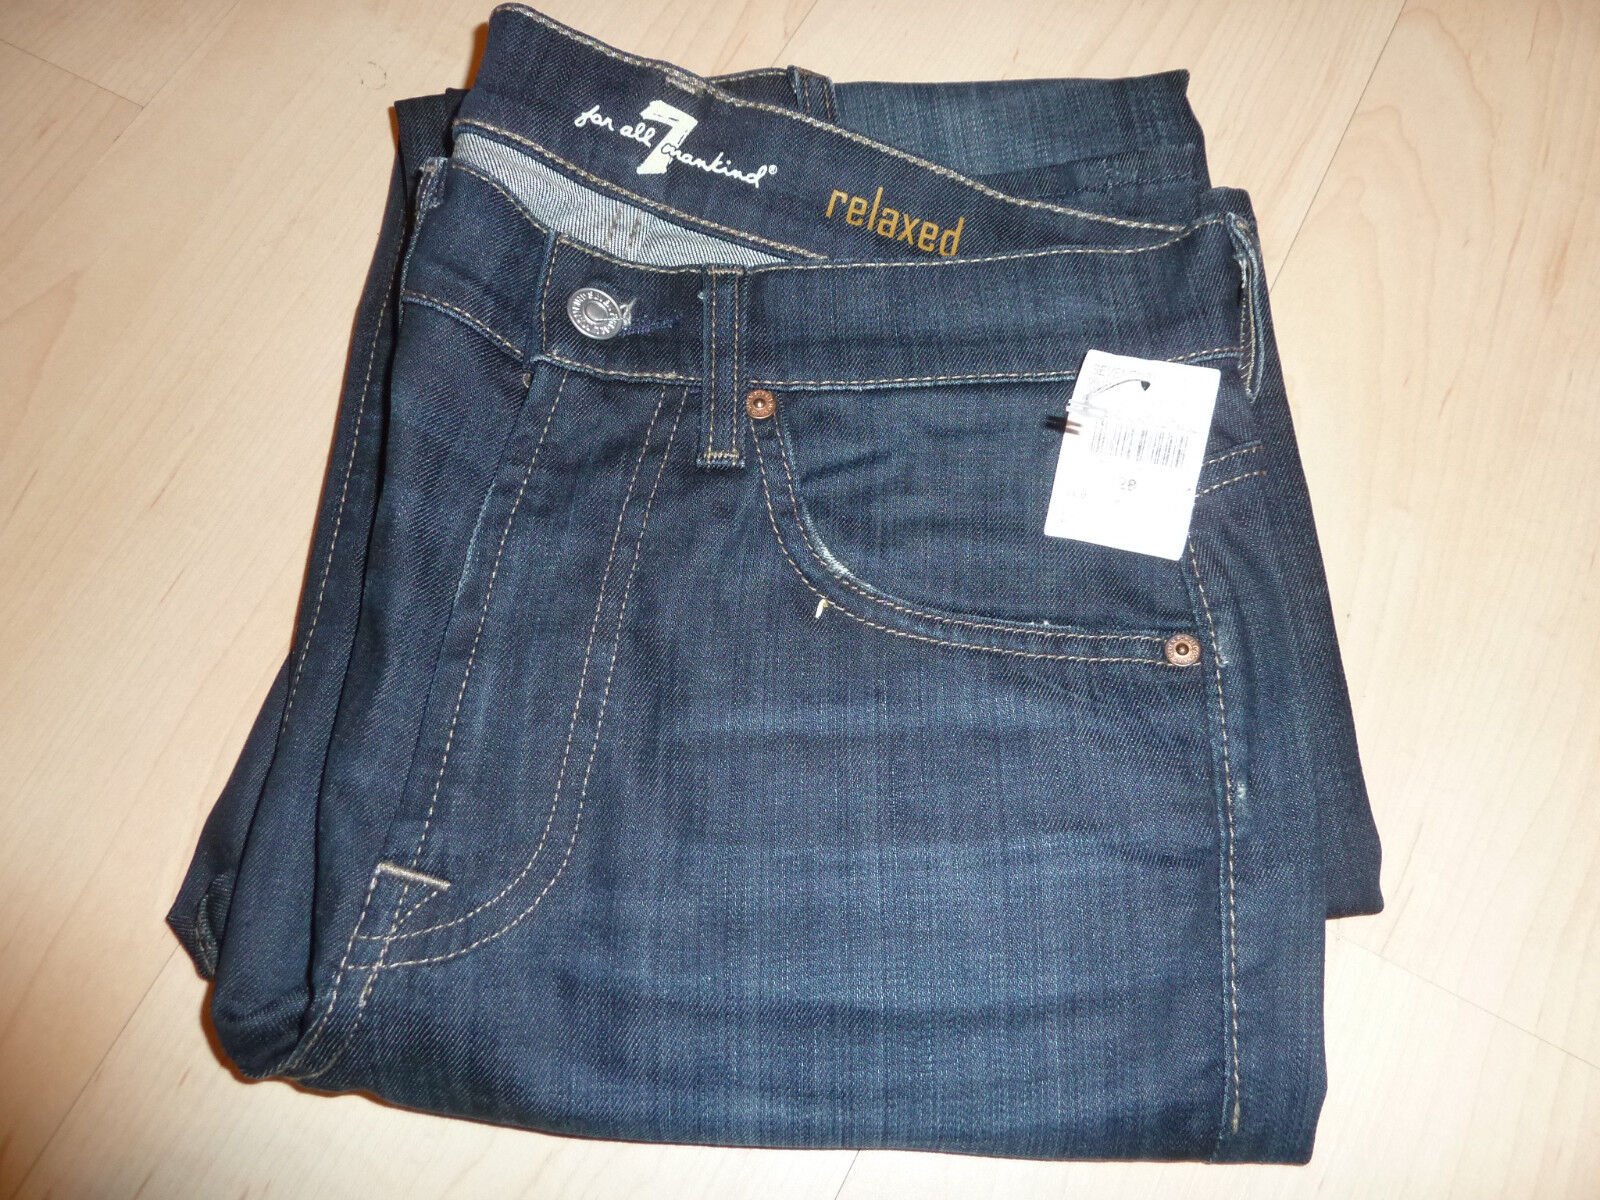 NEW + SEVEN 7 For All Mankind Jeans MENS Sz 28 NWT Cotton bluee Relaxed 4